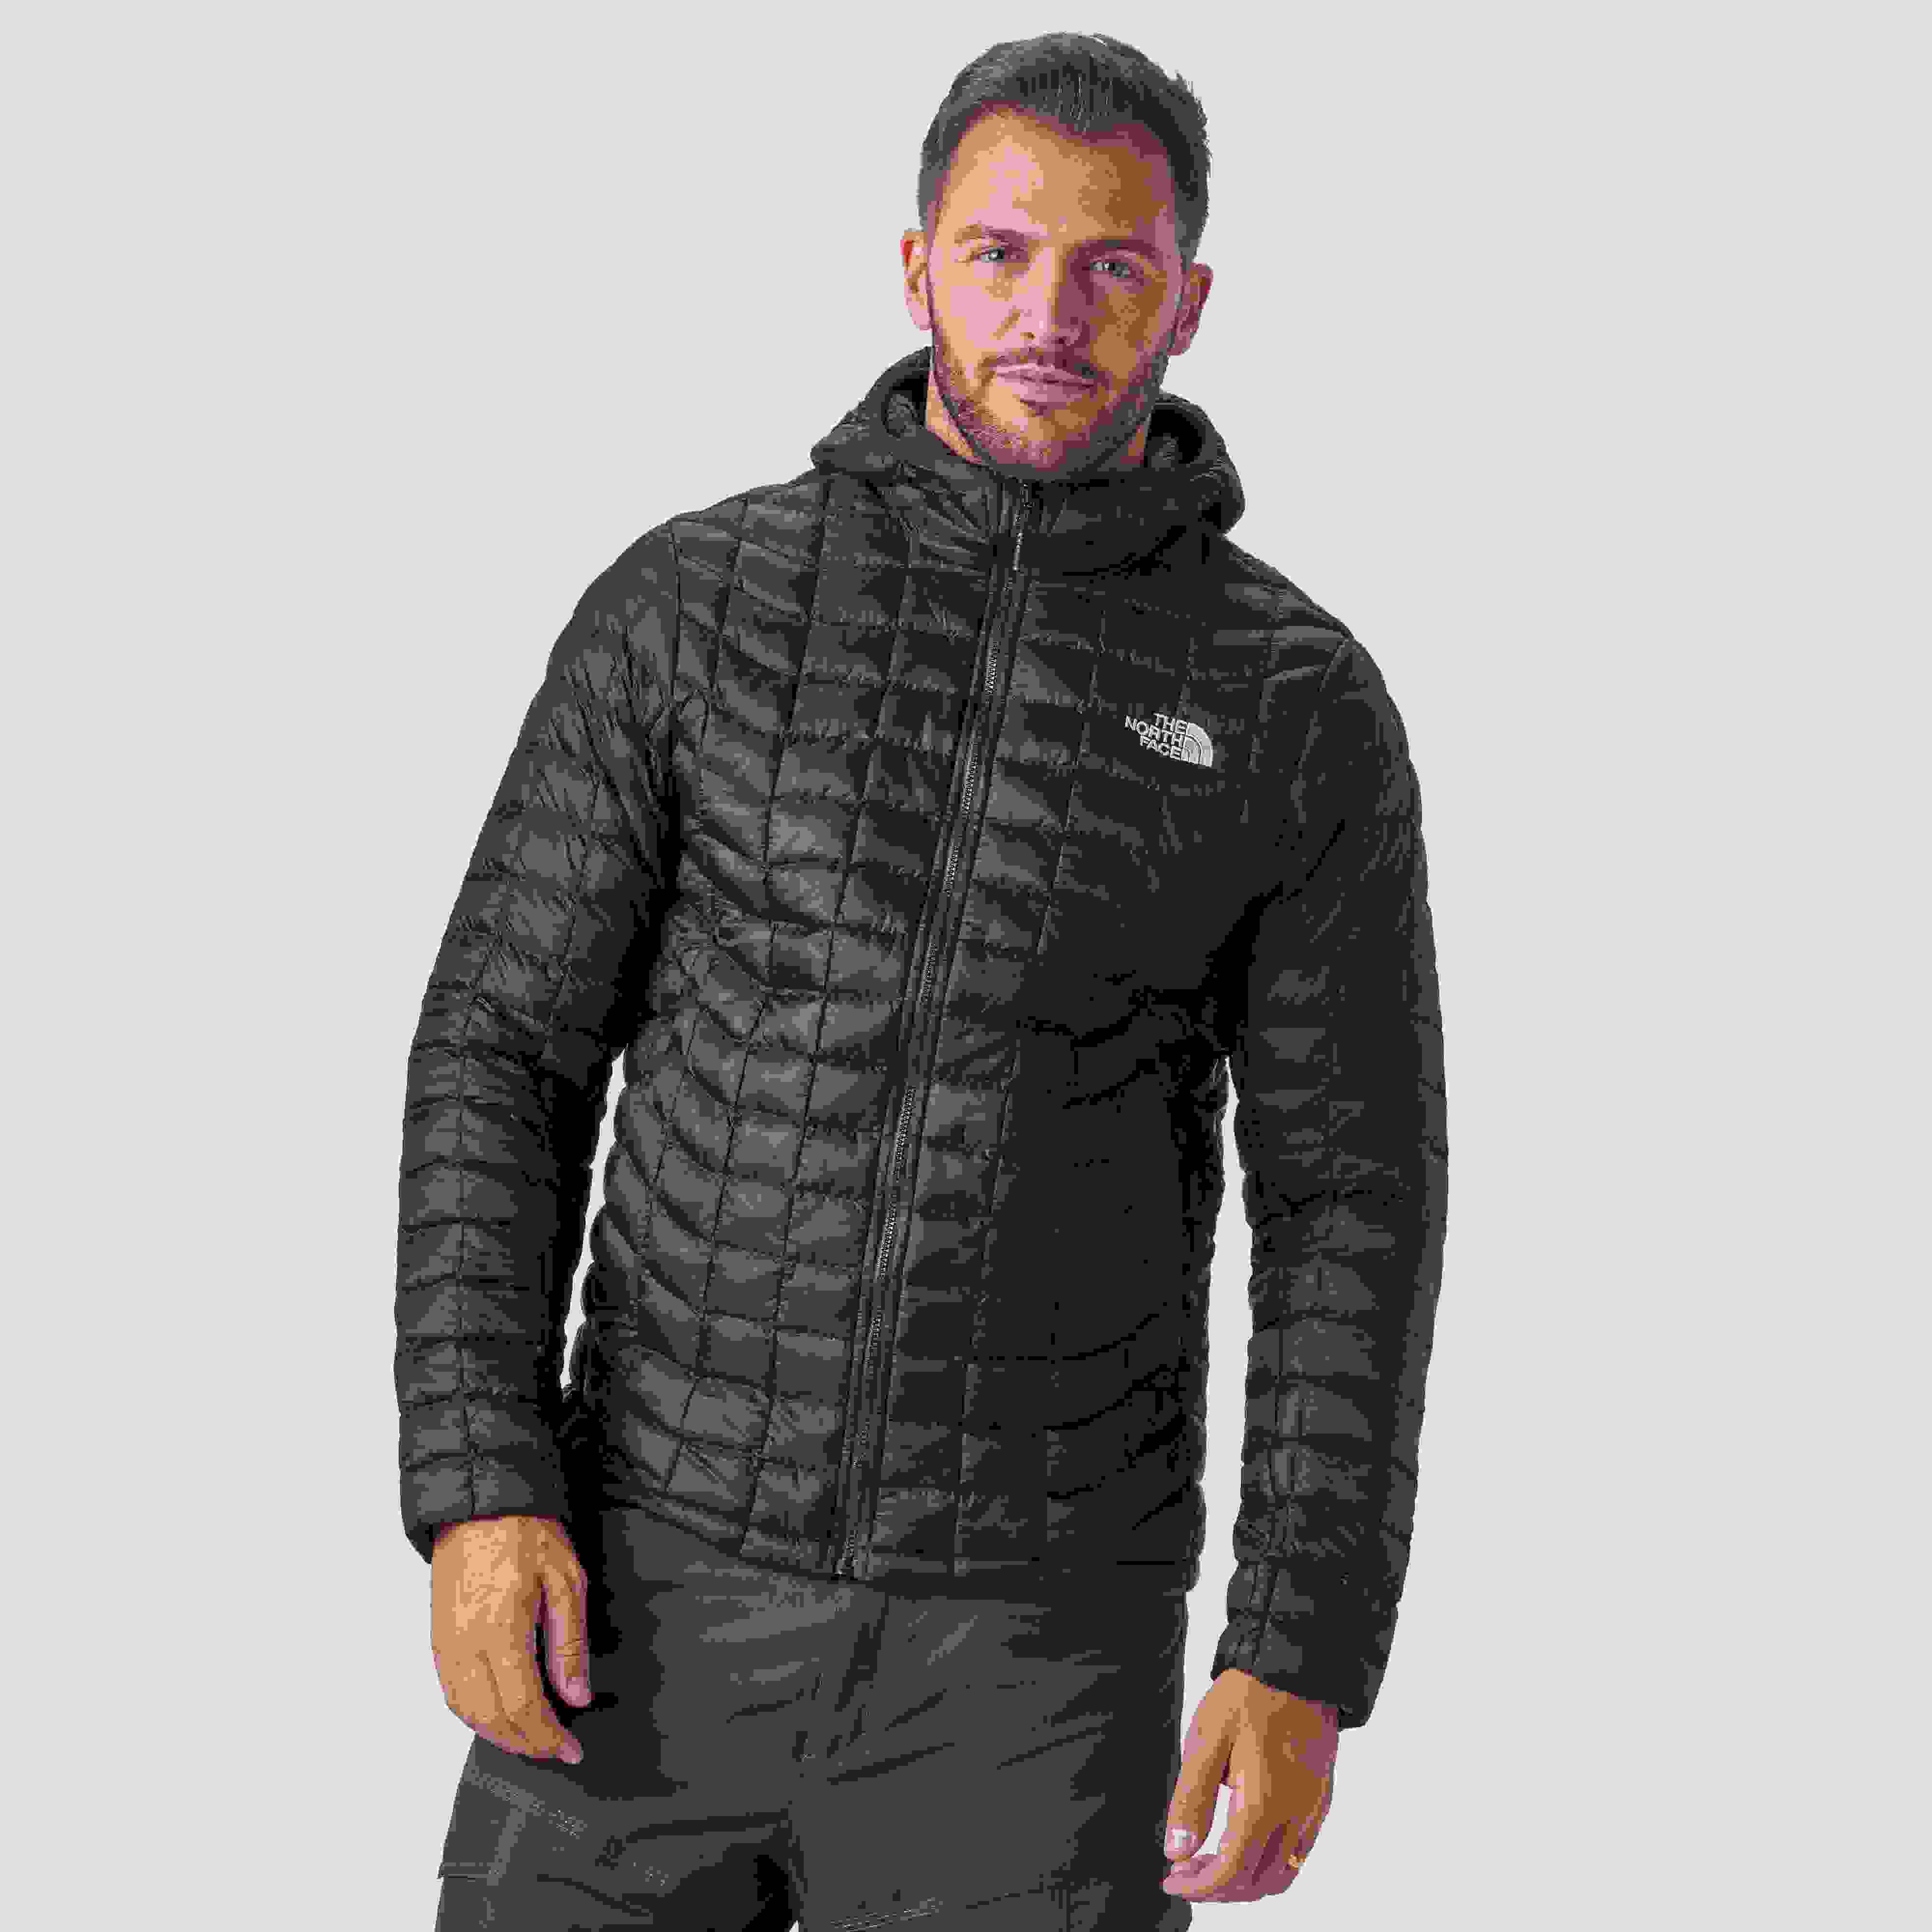 free shipping the north face thermoball hoodie jacket mens